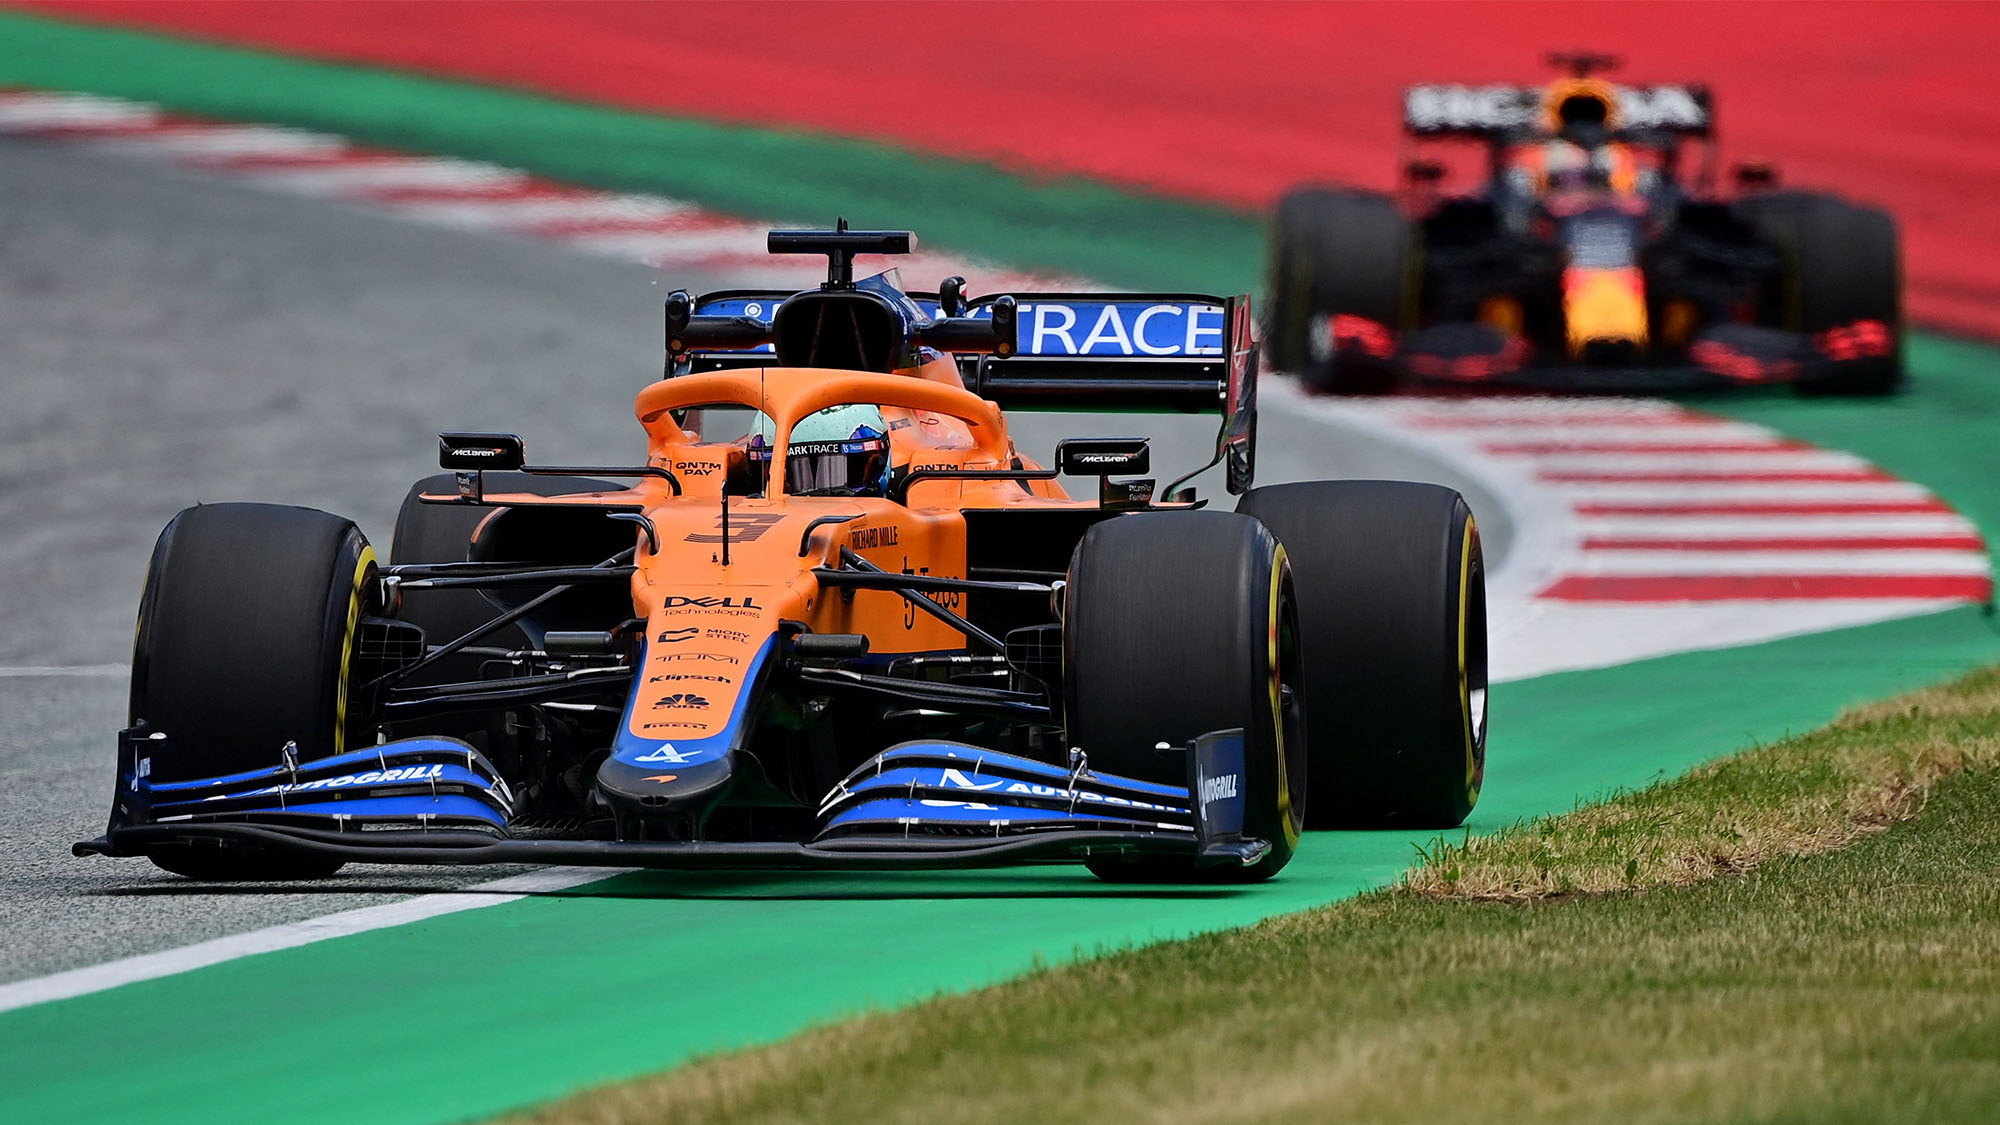 McLaren's Australian driver Daniel Ricciardo drives during the first practice session at the Red Bull Ring race track in Spielberg, Austria, on June 25, 2021, ahead of the Formula One Styrian Grand Prix. (Photo by ANDREJ ISAKOVIC / AFP) (Photo by ANDREJ ISAKOVIC/AFP via Getty Images)